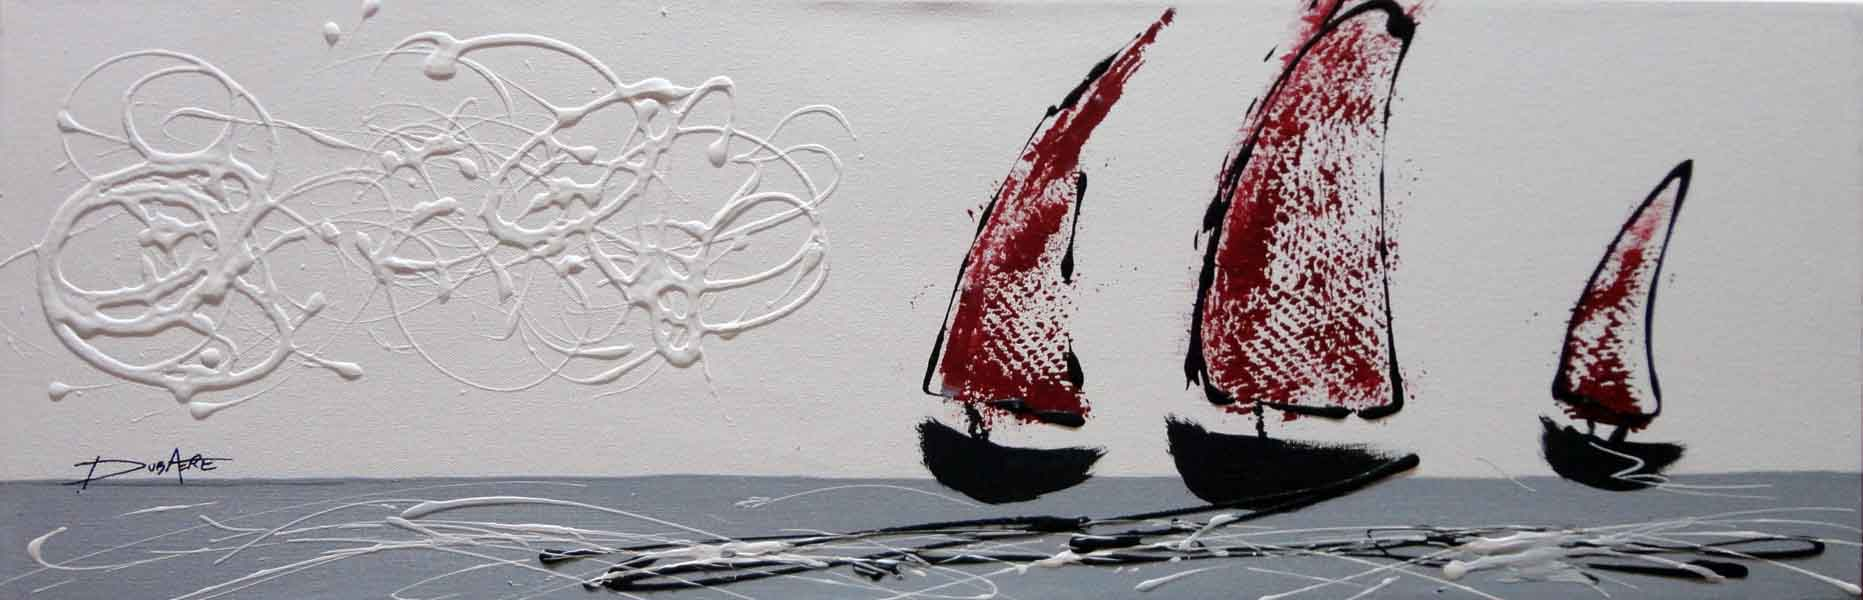 acrylic painting modern canvas boats